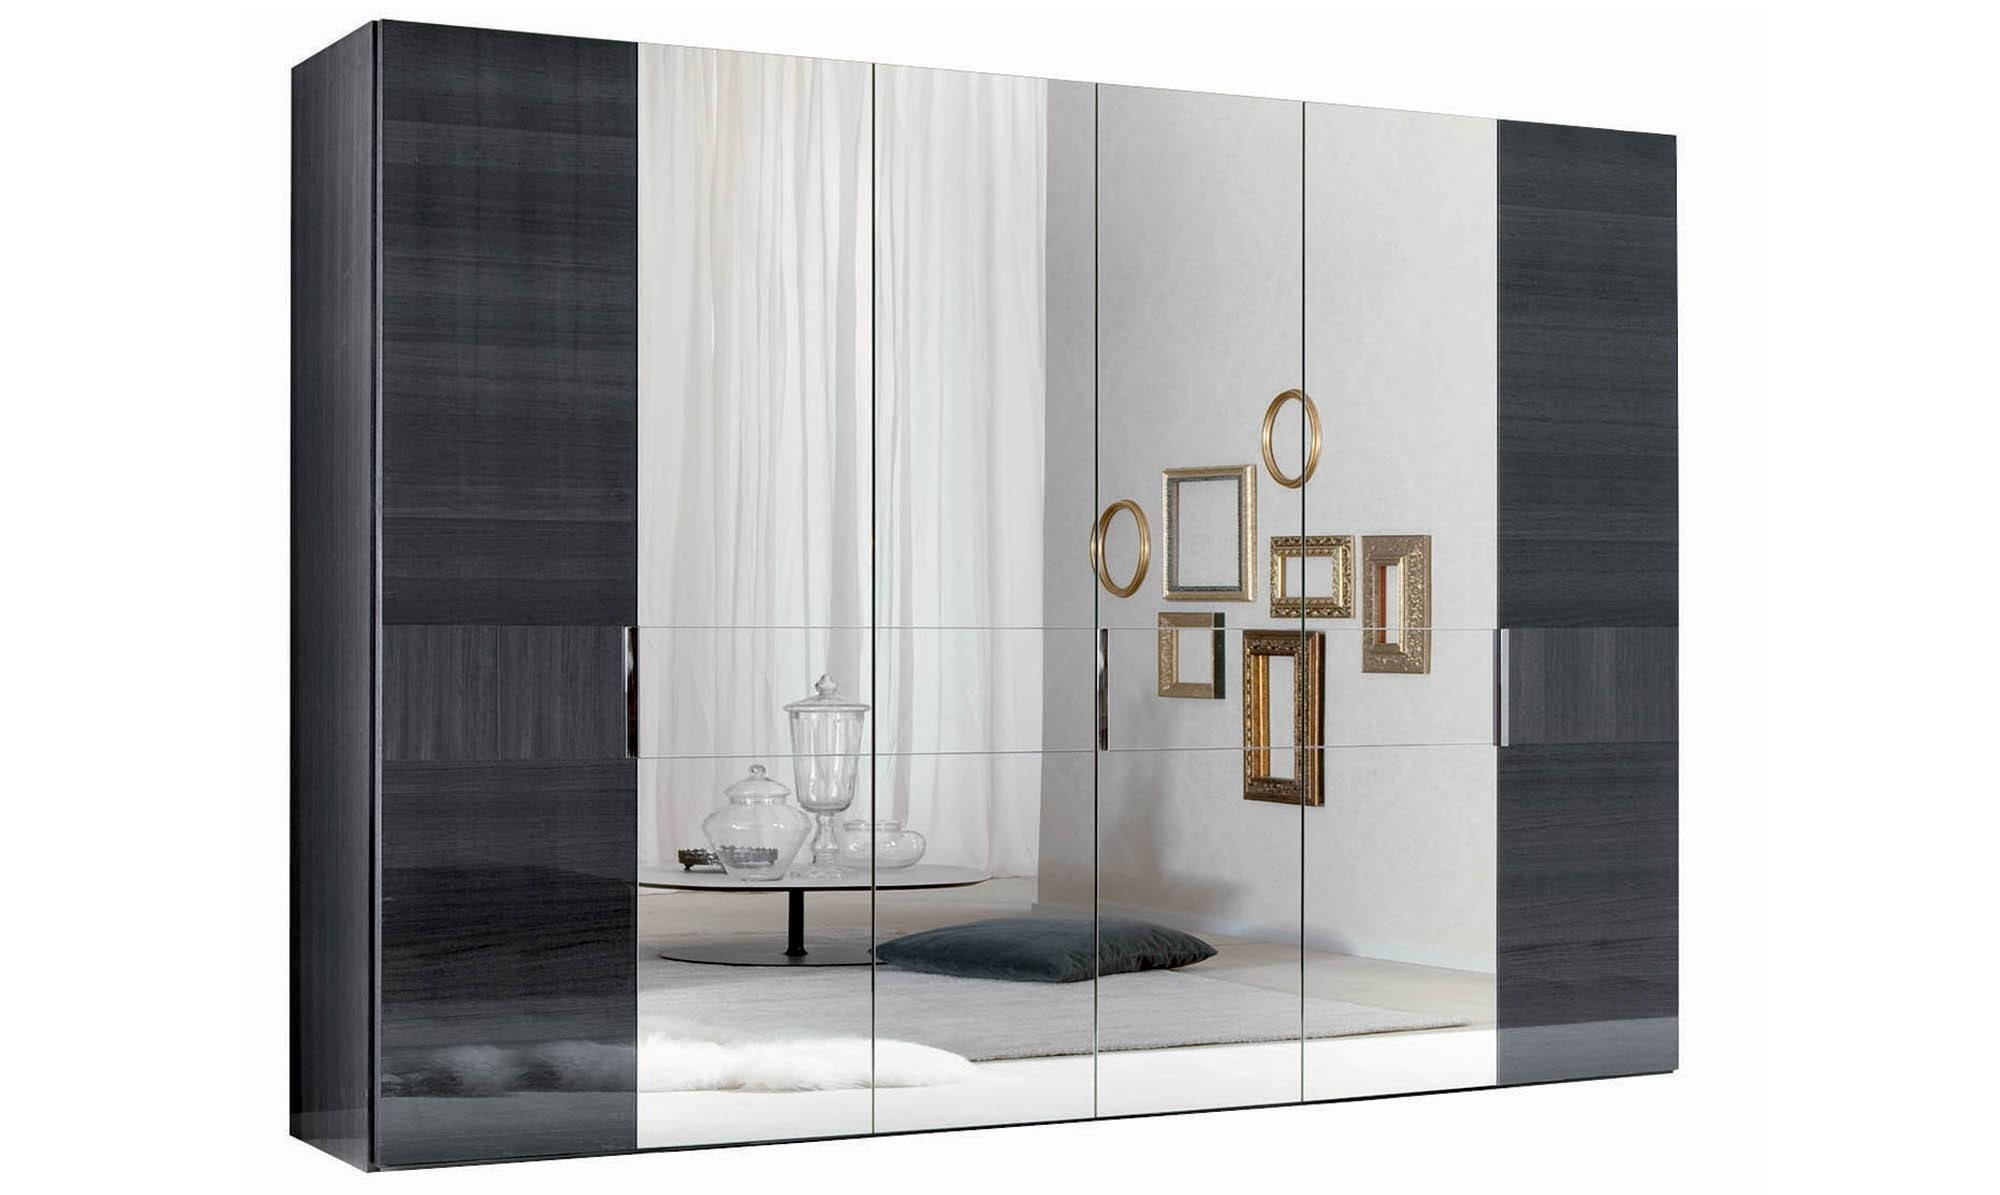 Black Wardrobe With Mirror, Grill Lynx Door Drawer Wardrobe With inside White Gloss Mirrored Wardrobes (Image 1 of 15)